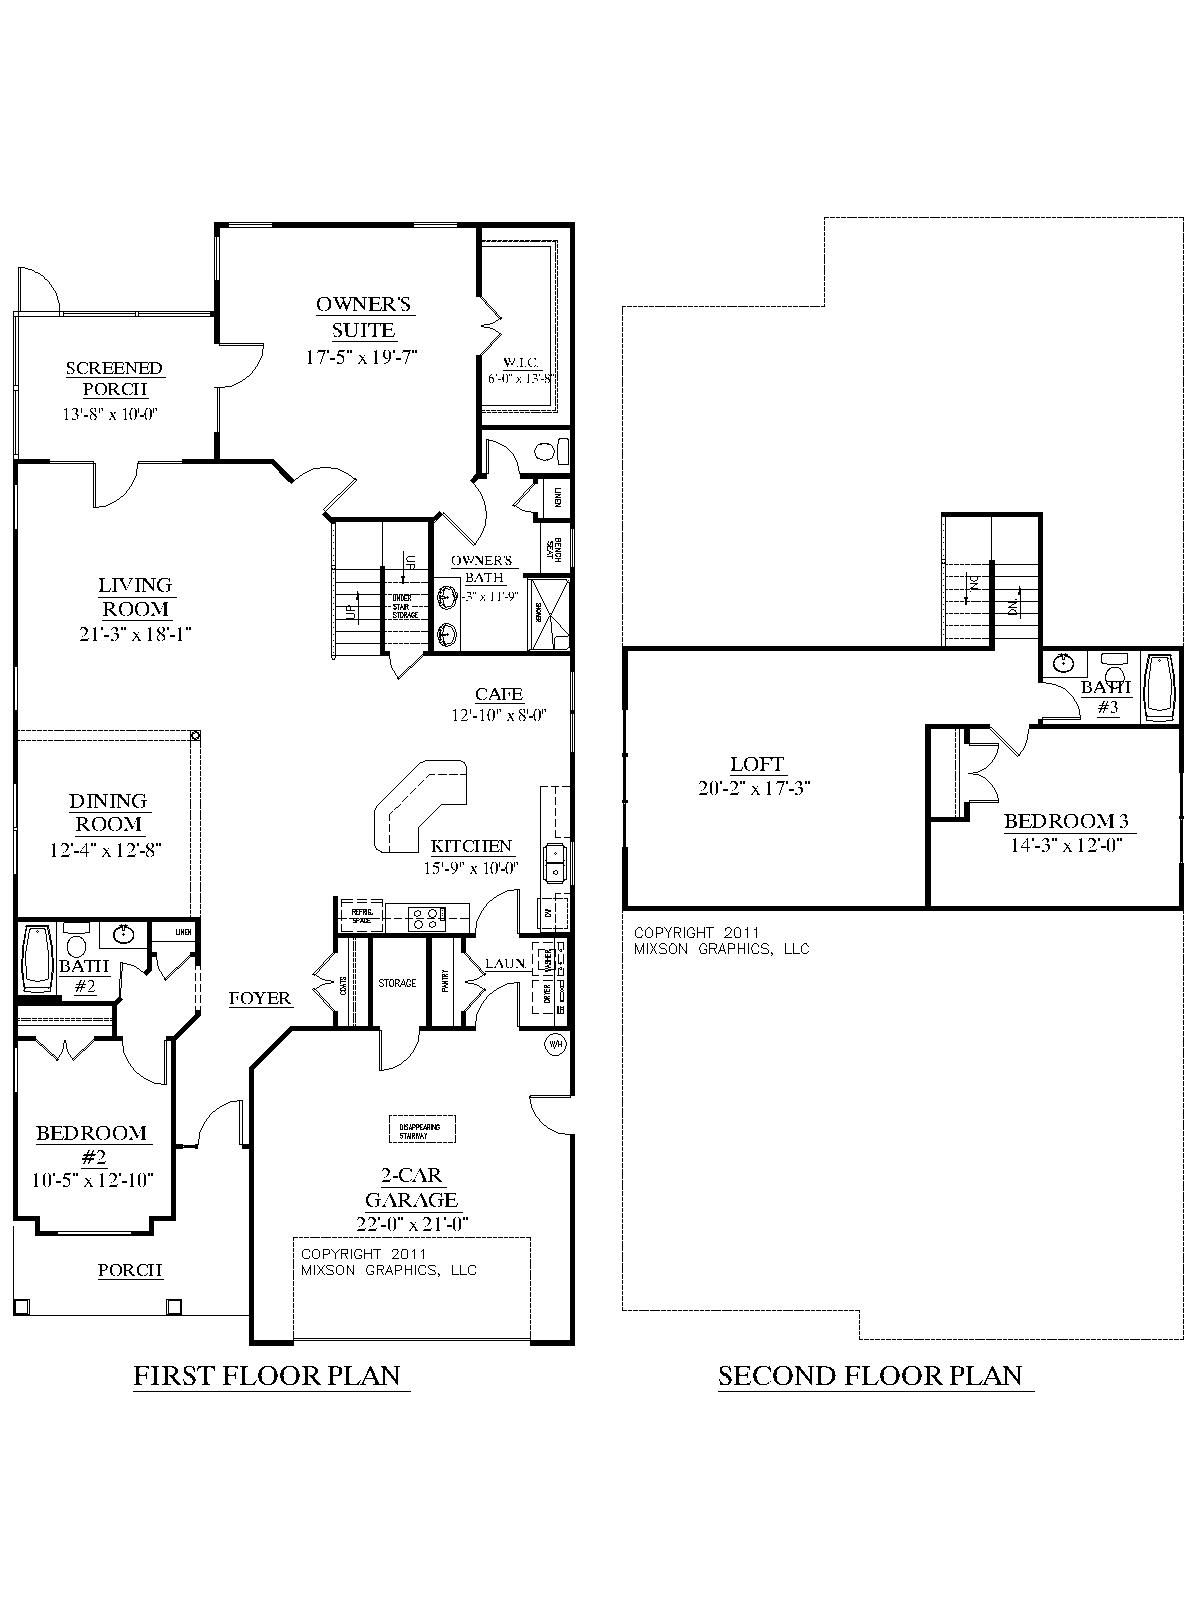 House plan 2755 woodbridge floor plan traditional 1 1 2 for 2 story house plans master bedroom downstairs